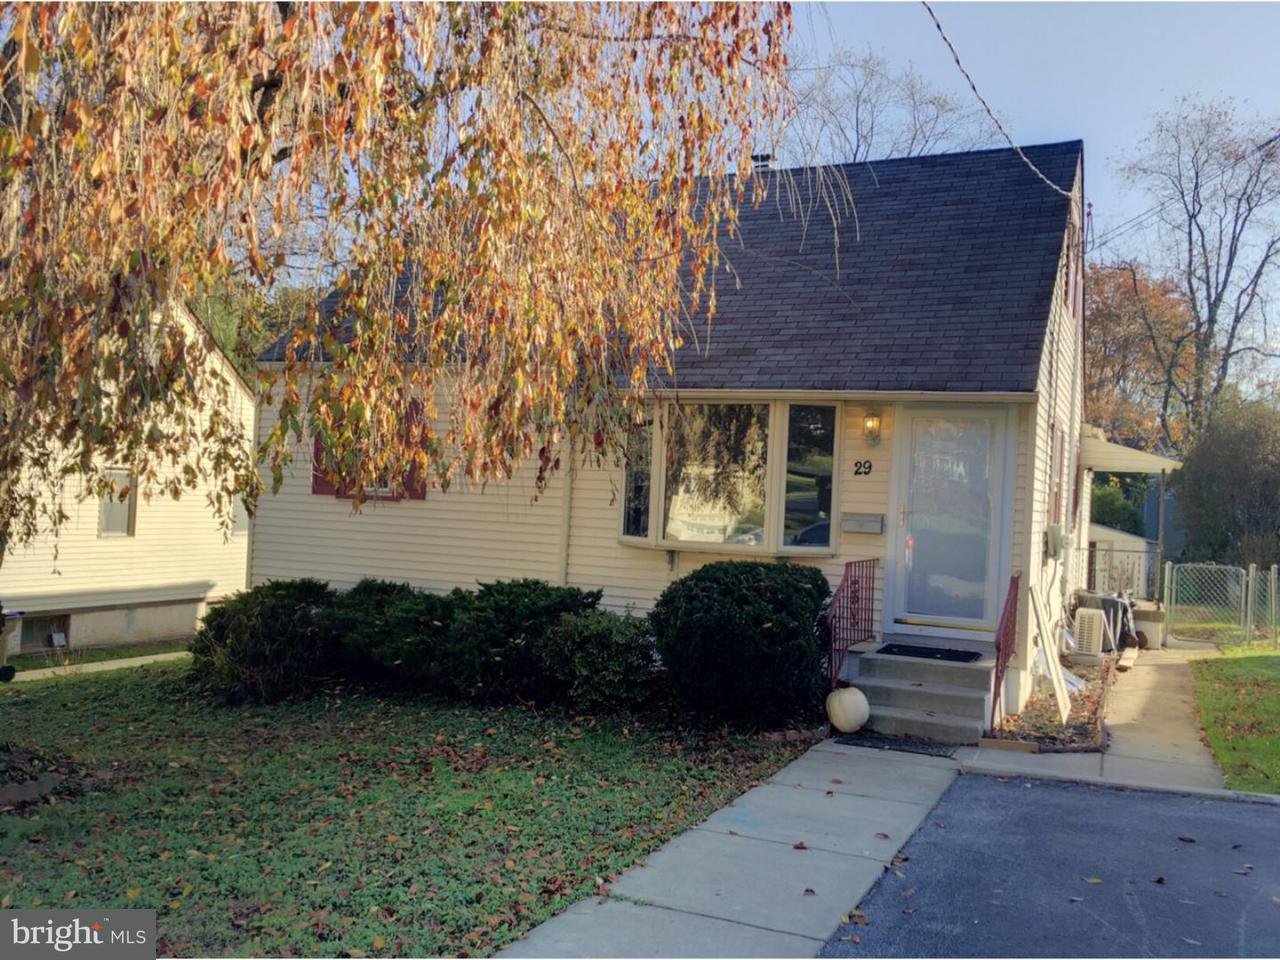 Single Family Home for Rent at 29 DELMONT Road Newtown Square, Pennsylvania 19073 United States